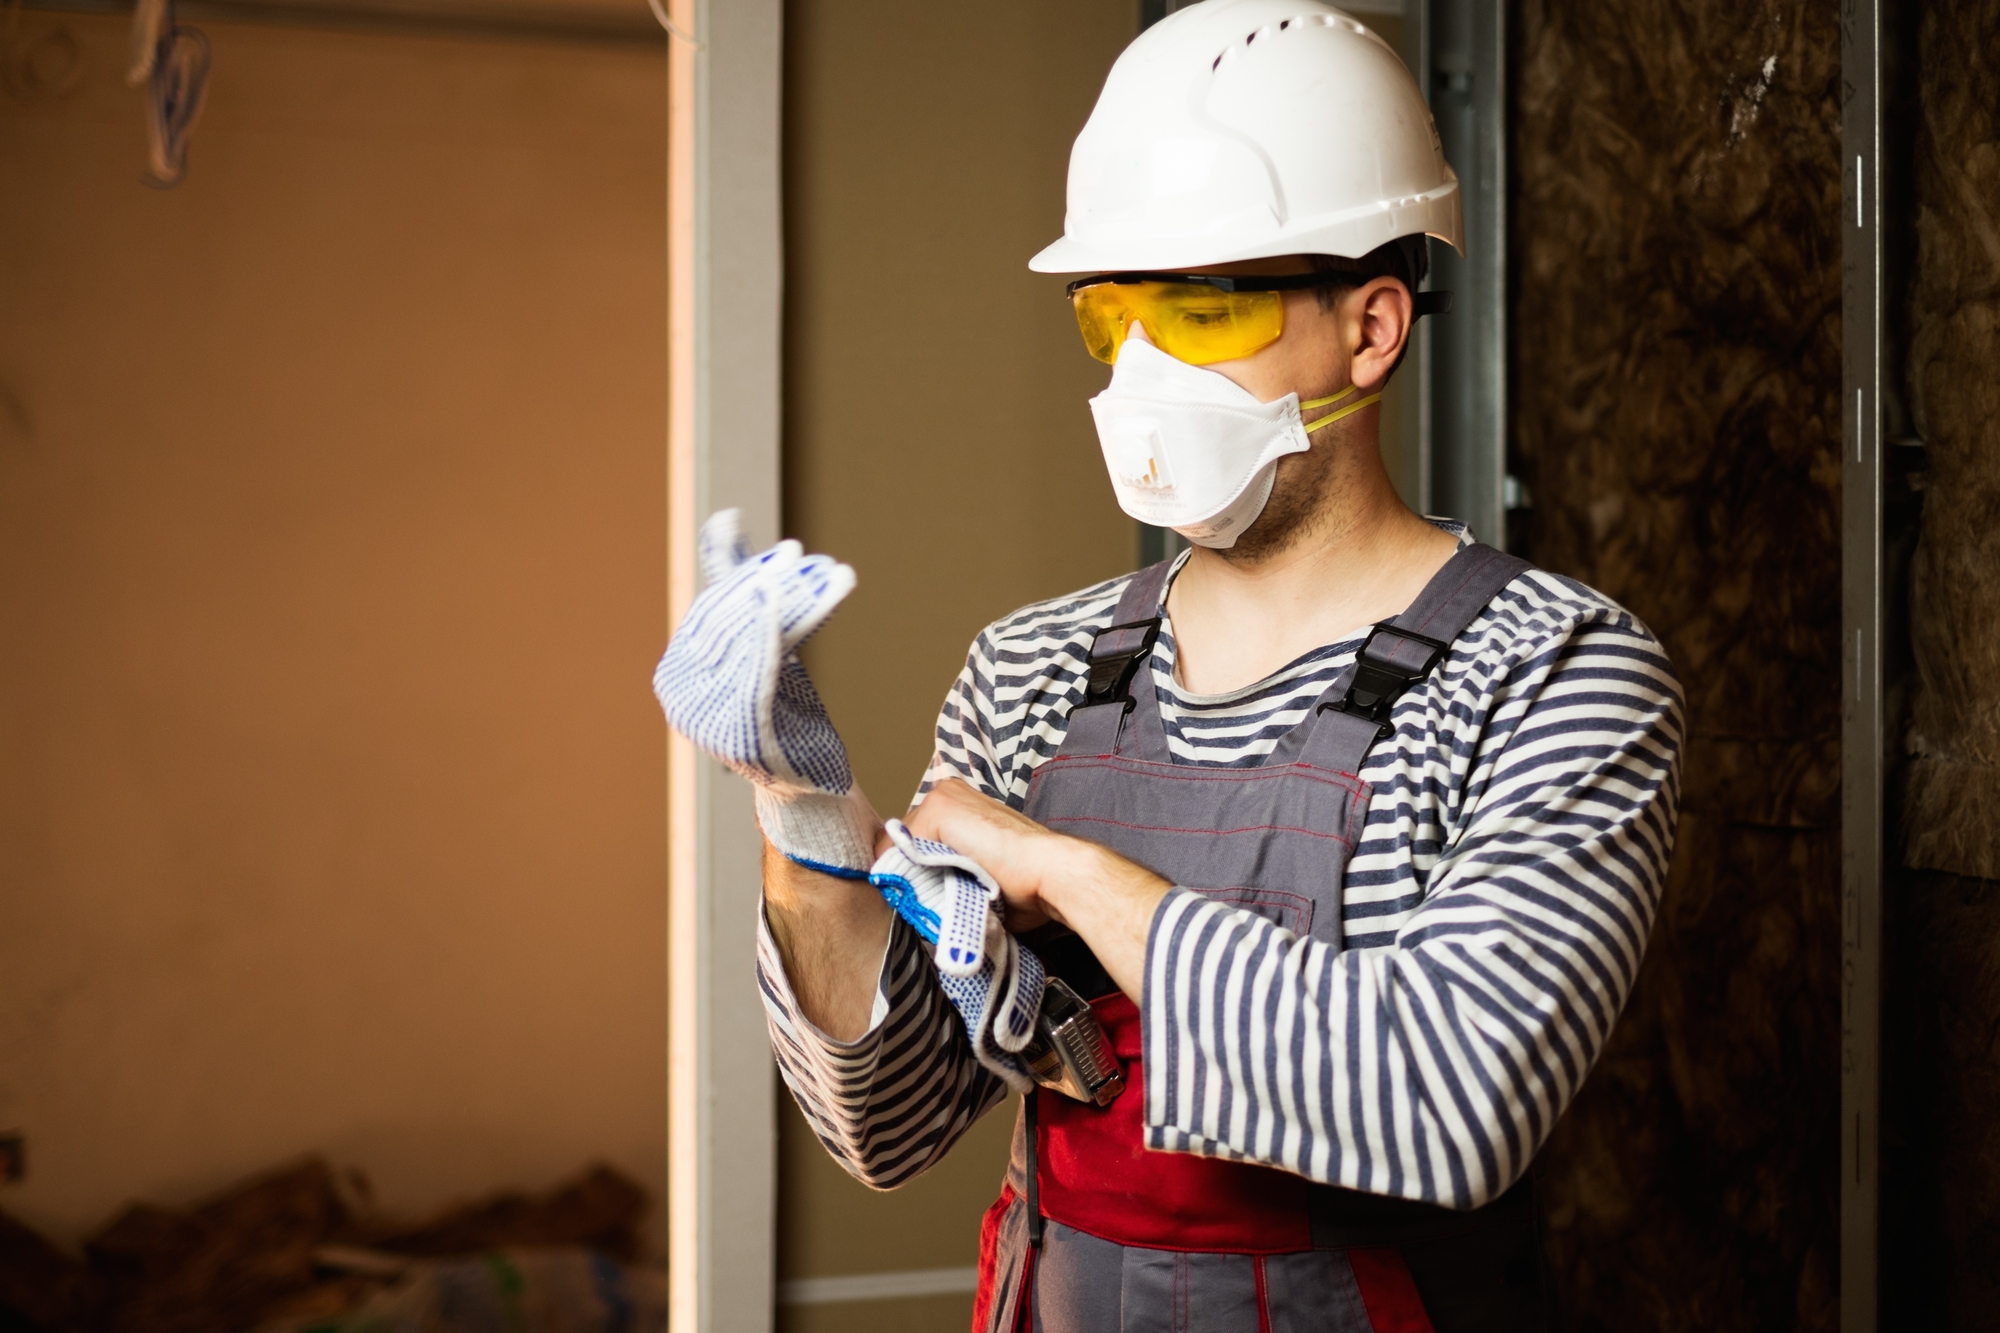 Builder in protective wear